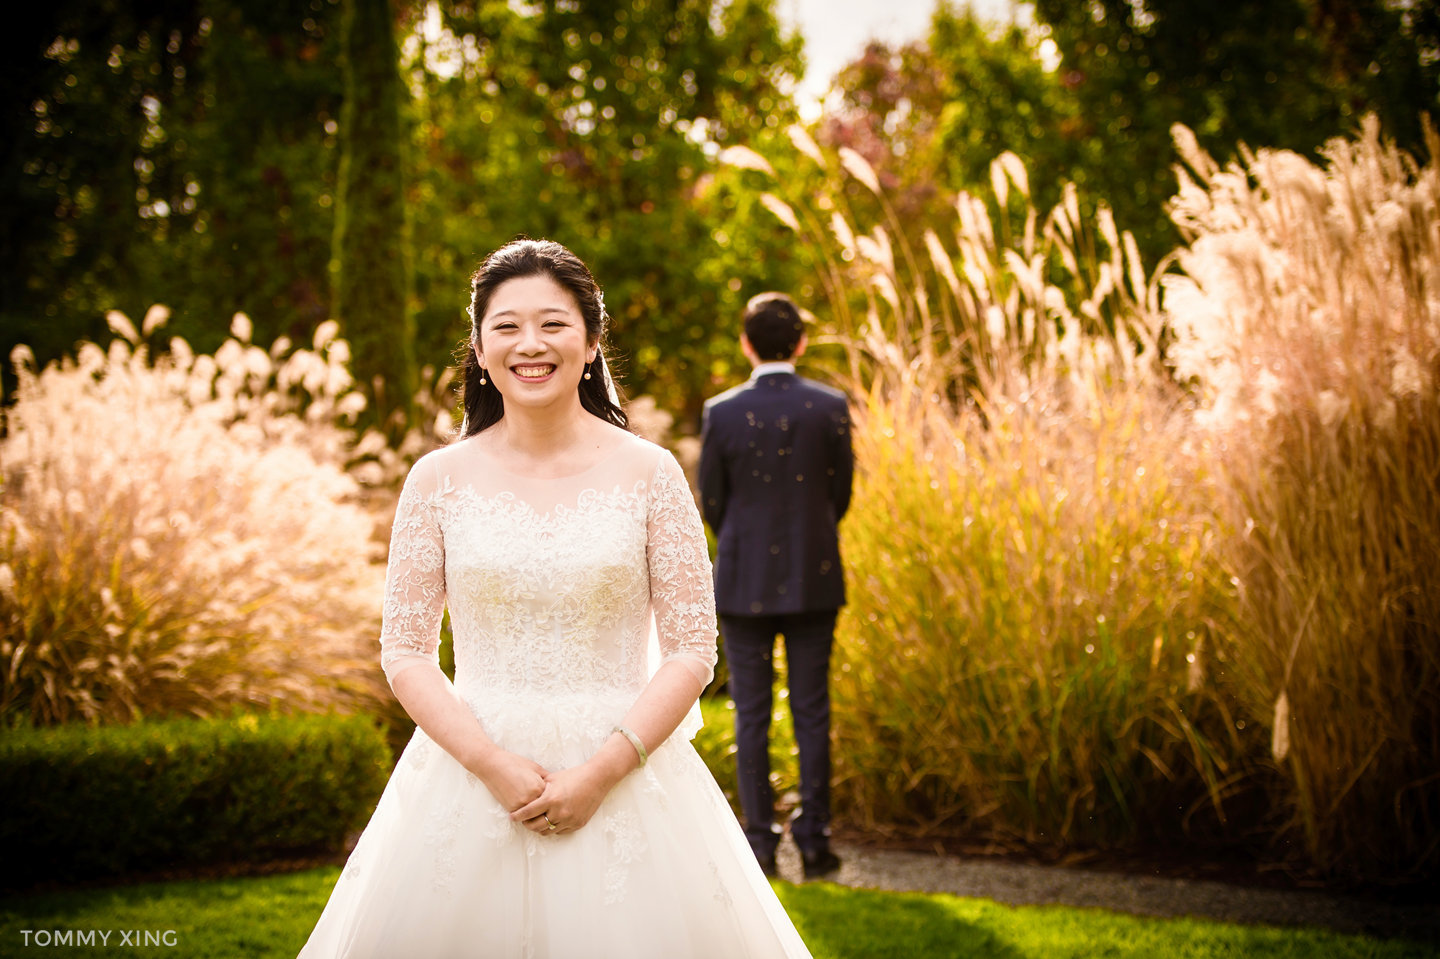 San Francisco Wedding Photography Valley Presbyterian Church WEDDING Tommy Xing Photography 洛杉矶旧金山婚礼婚纱照摄影师033.jpg